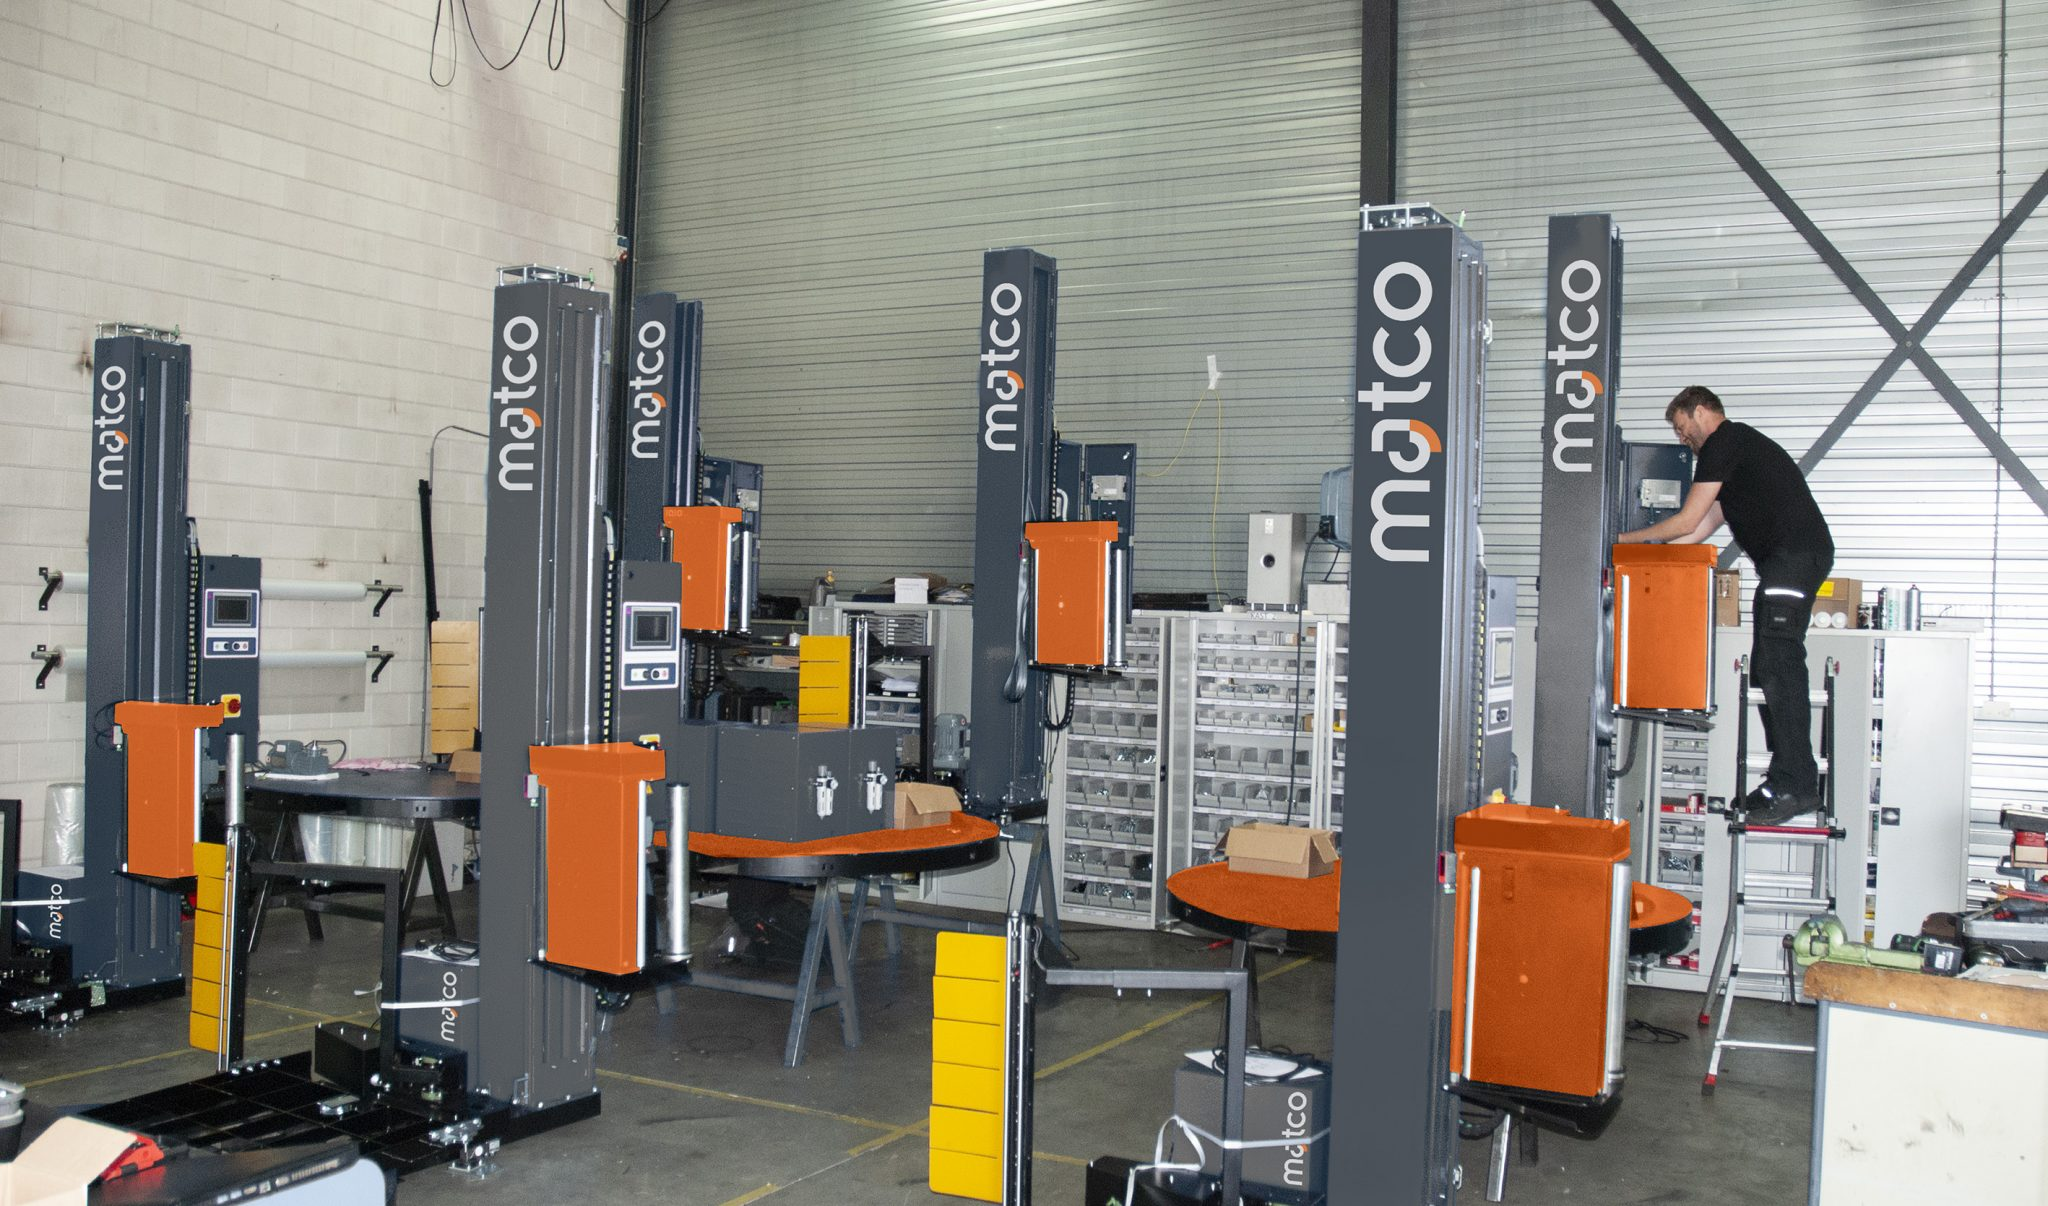 Matco - over ons